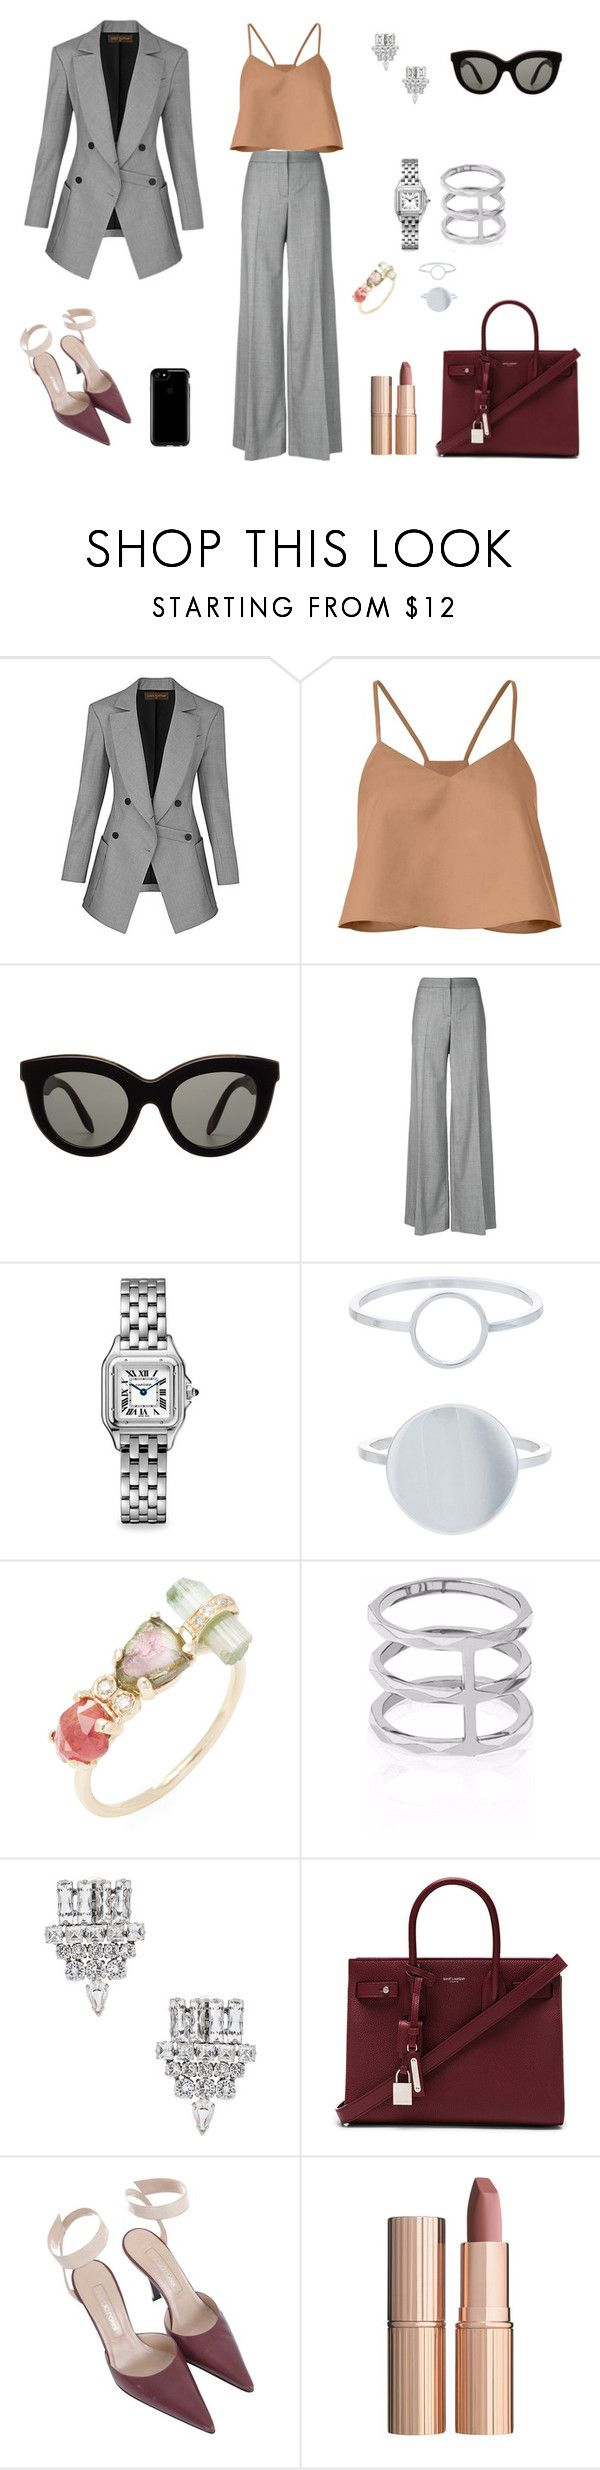 """ofi"" by ananleke on Polyvore featuring moda, TIBI, Victoria Beckham, Alexander McQueen, Cartier, Accessorize, Jacquie Aiche, Edge of Ember, Yves Saint Laurent y Sergio Rossi"